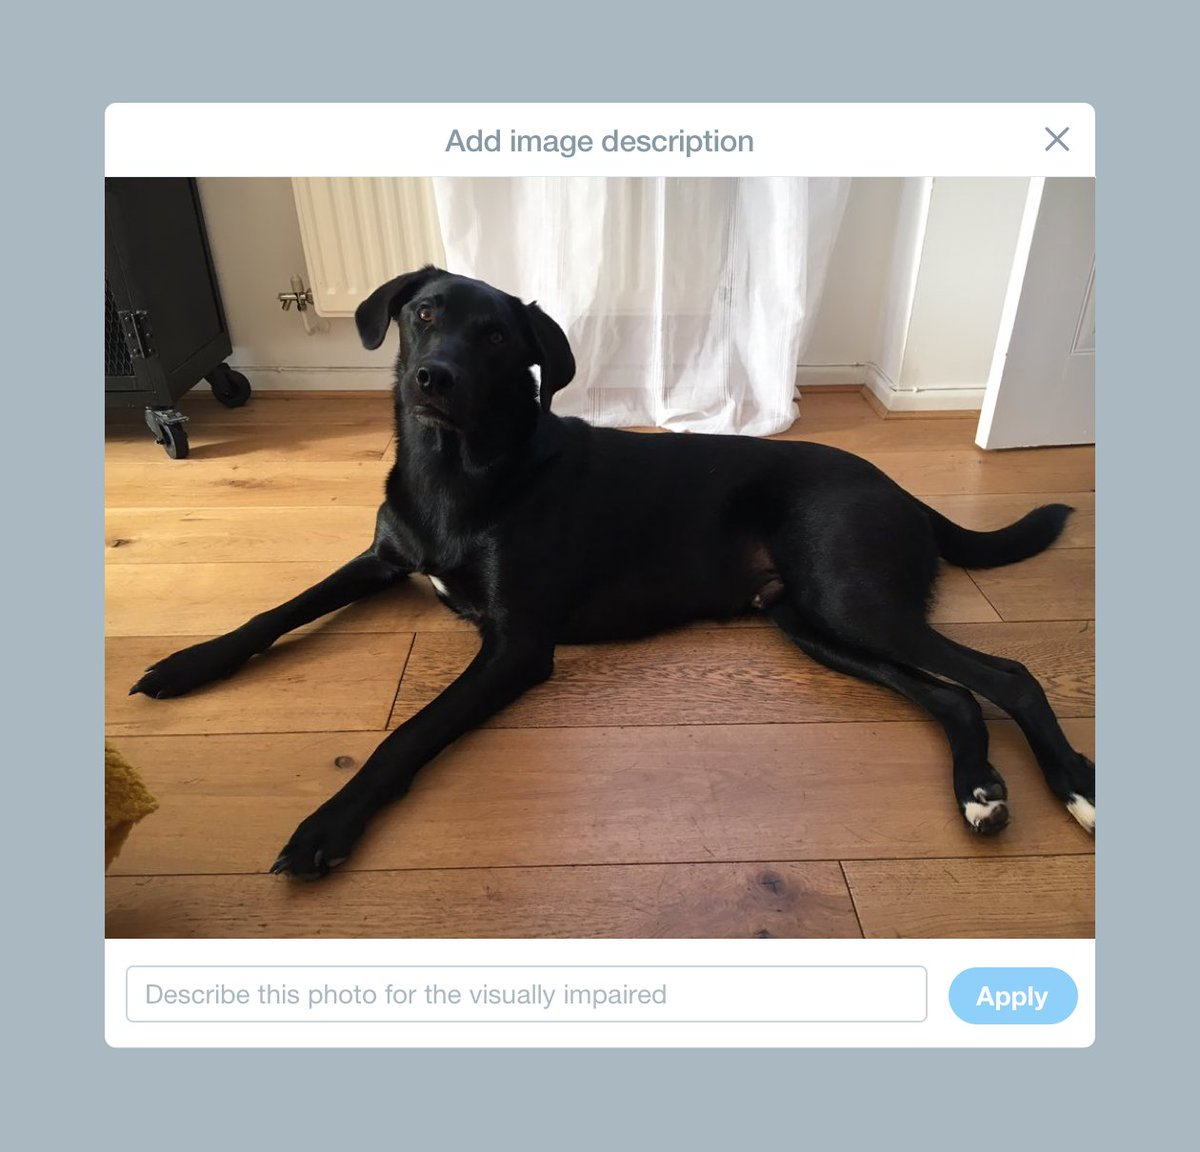 Starting today, people using TweetDeck can add descriptions, also known as alternative text, to images in Tweets. With this update, we're empowering people using TweetDeck to make their Tweets accessible to the widest possible audience.